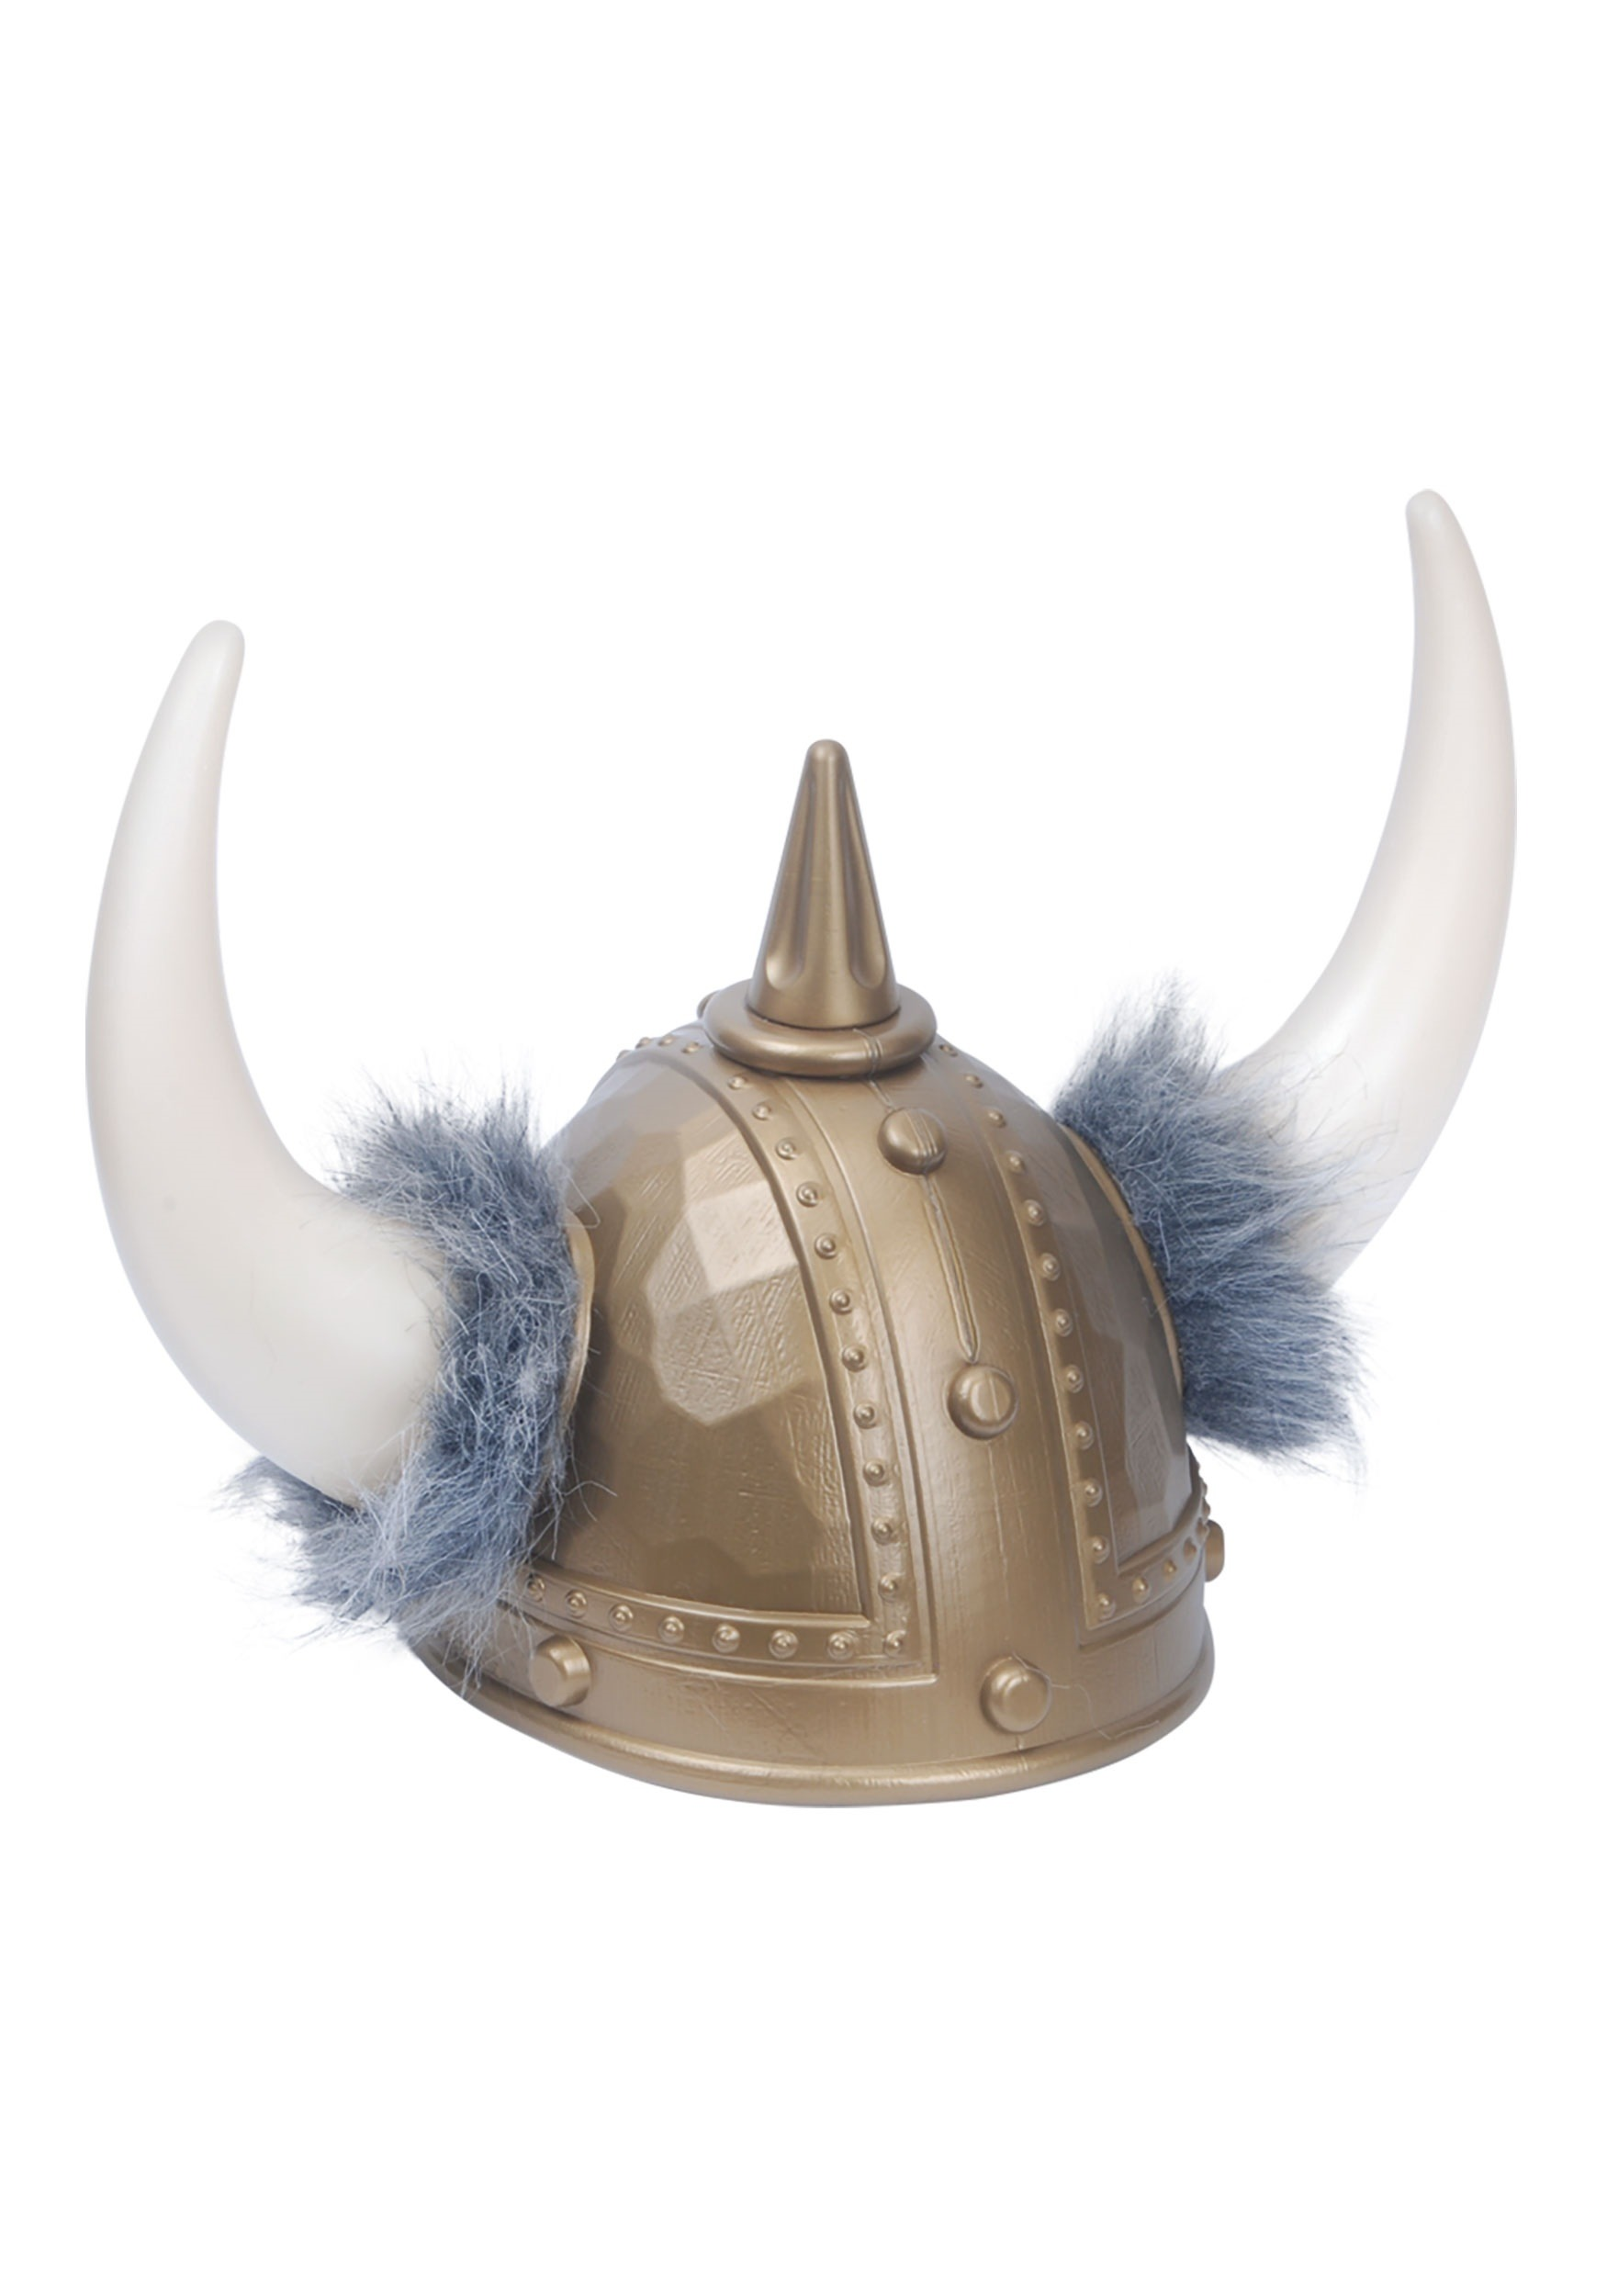 Horned Viking Helmet - Warrior Viking HelmetsHorned Helmet Viking